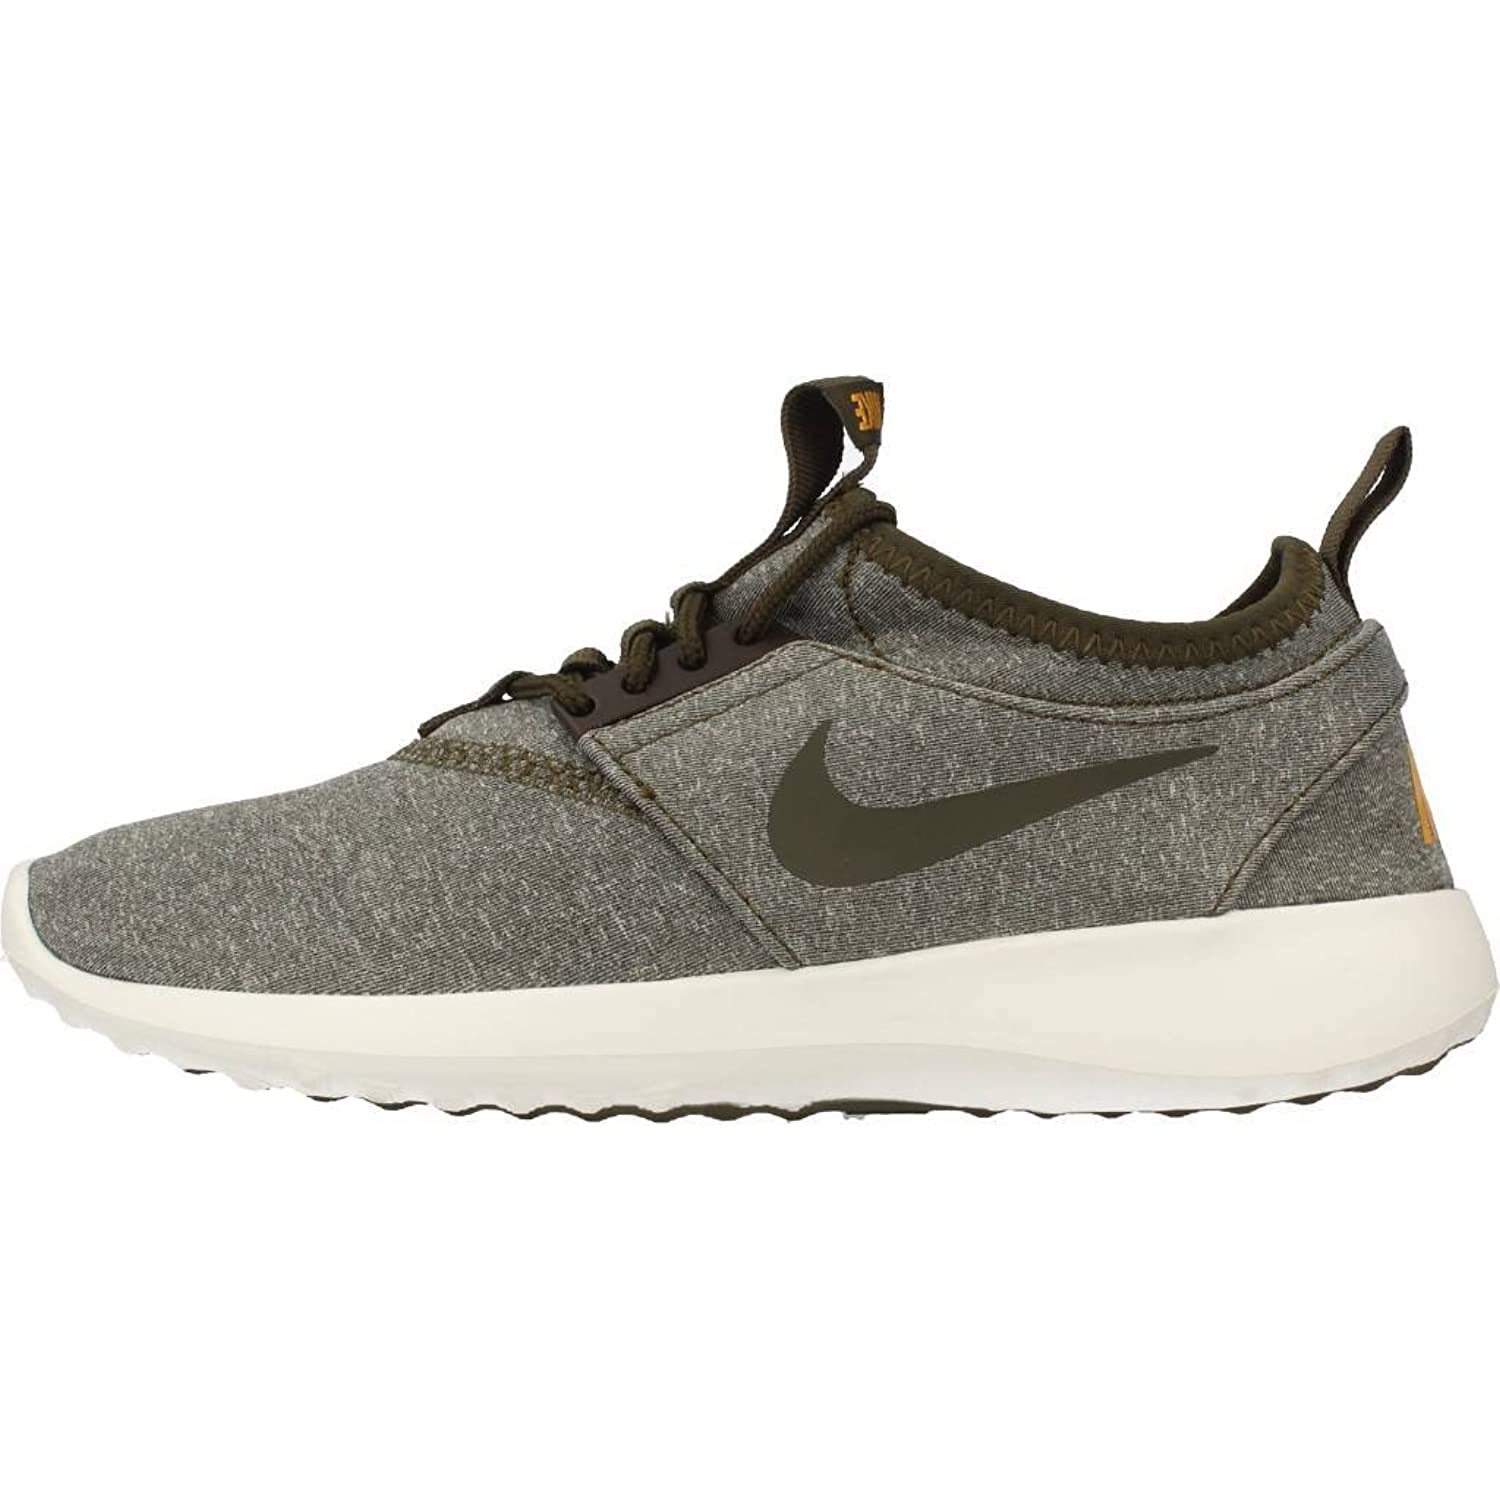 brand new f4eed 1255f Nike 862335-300, Chaussures de Sport Femme  Amazon.fr  Chaussures et Sacs